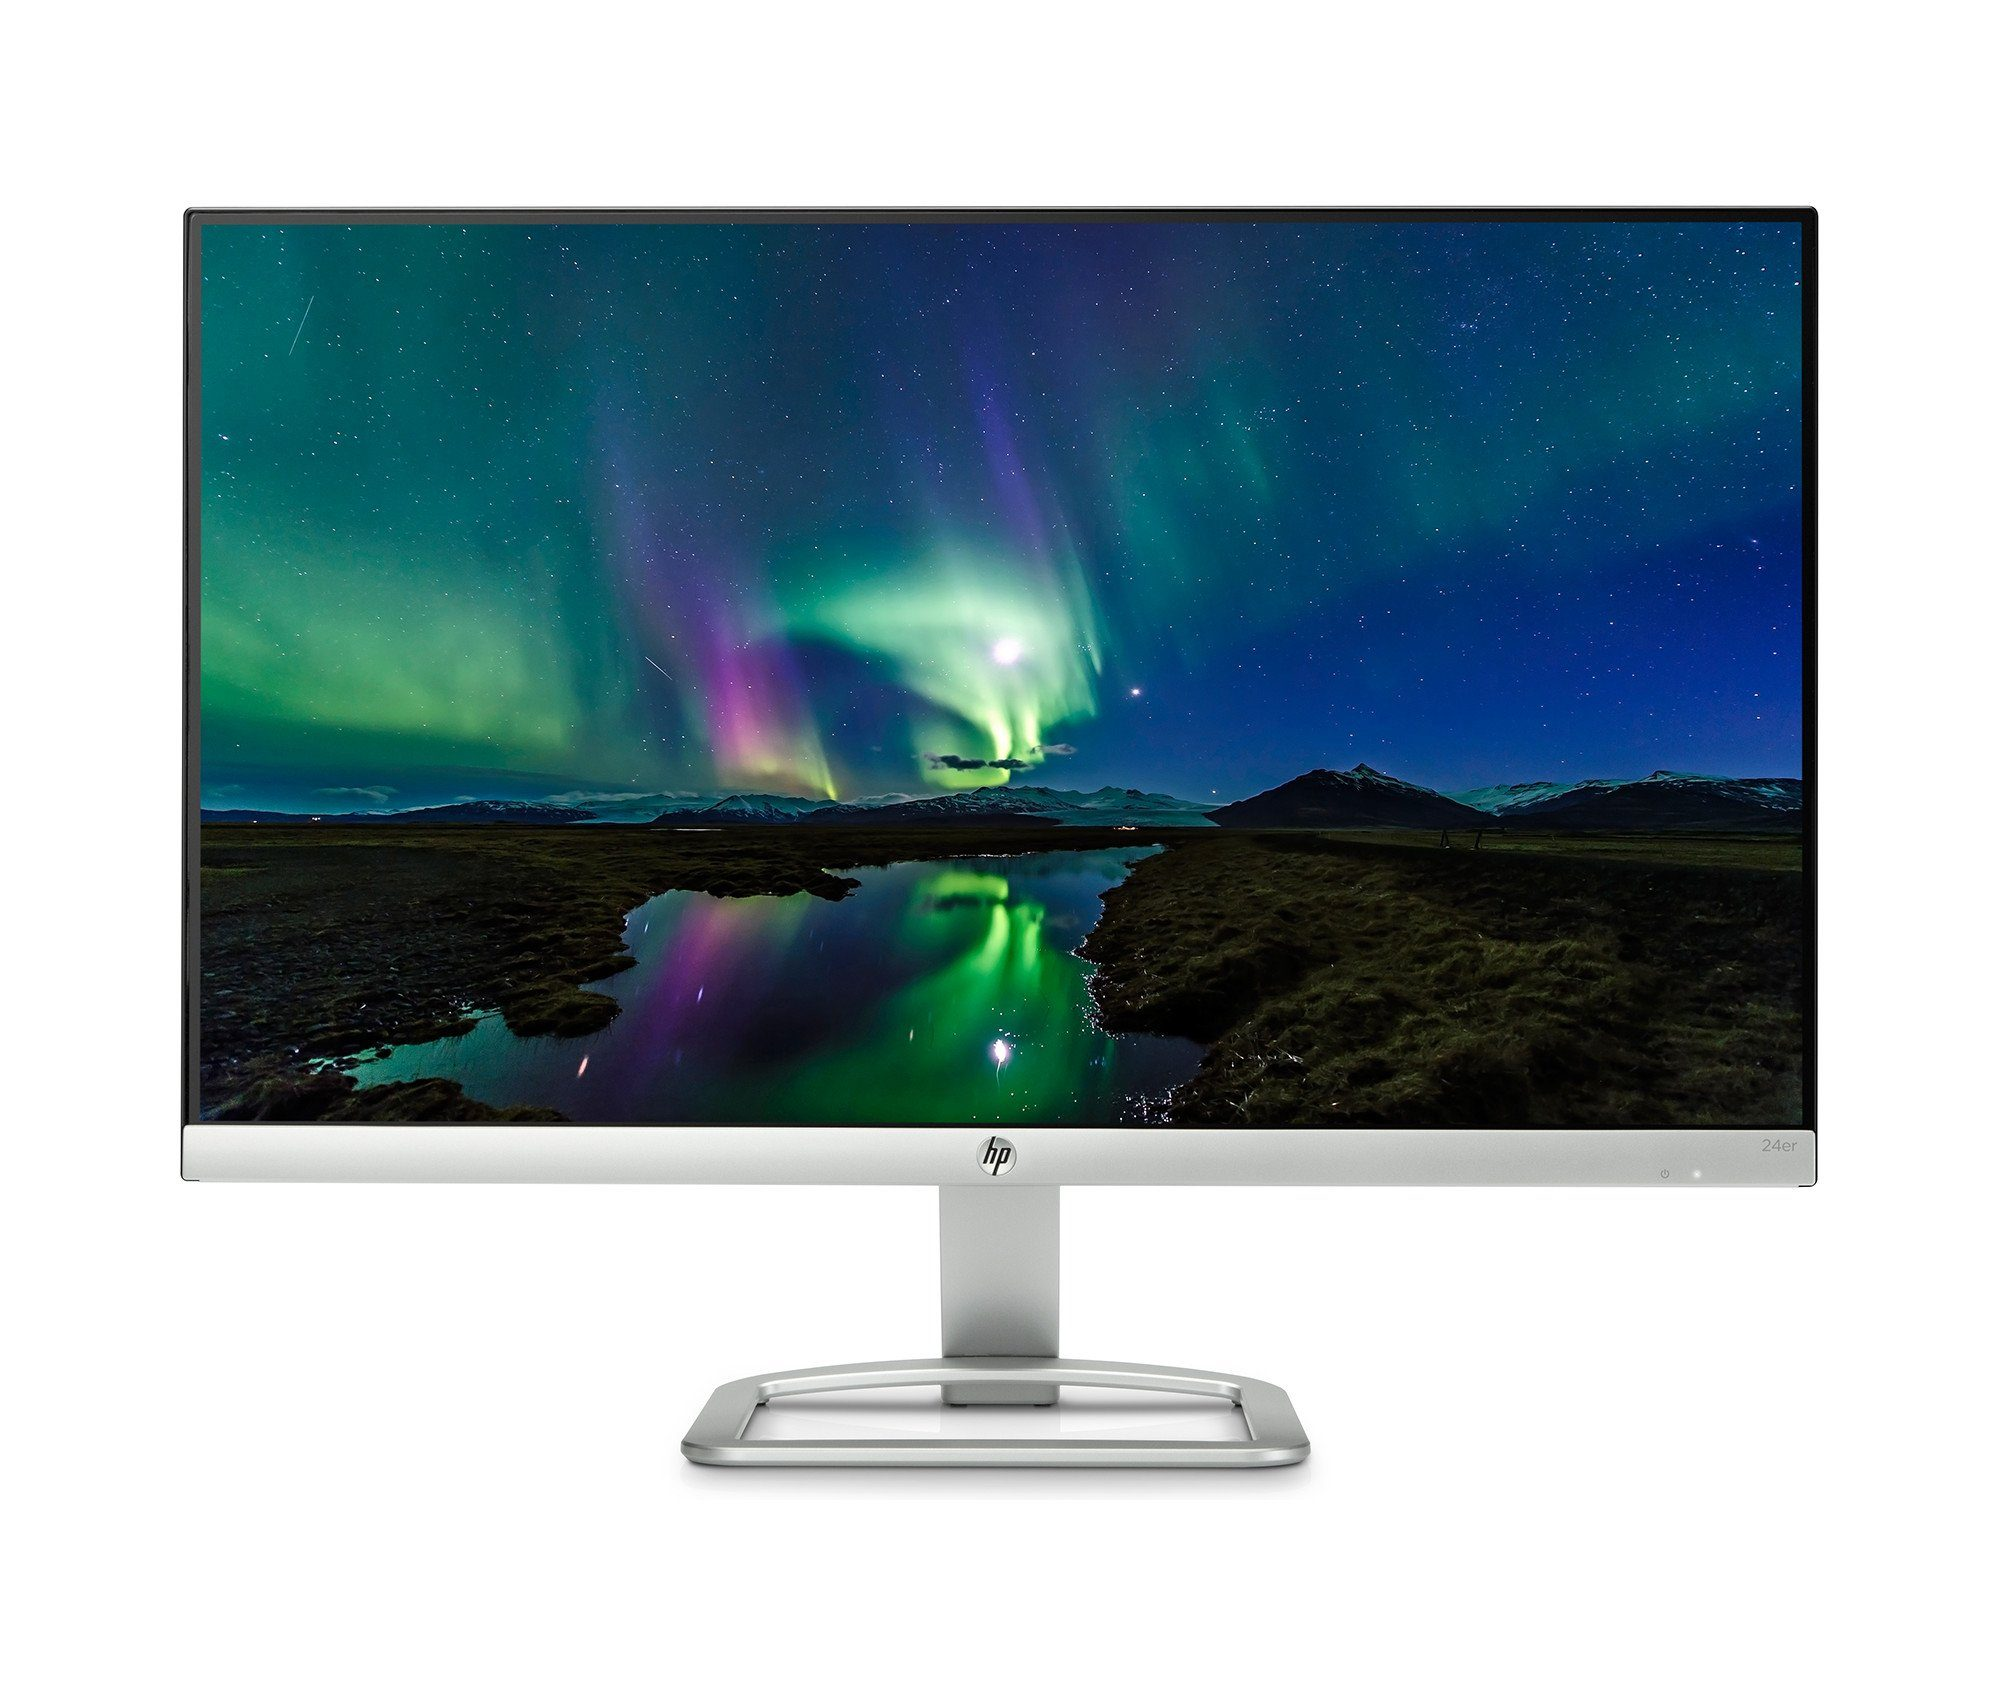 HP LED-Monitor »24er Display, 24 Zoll, IPS-Panel«